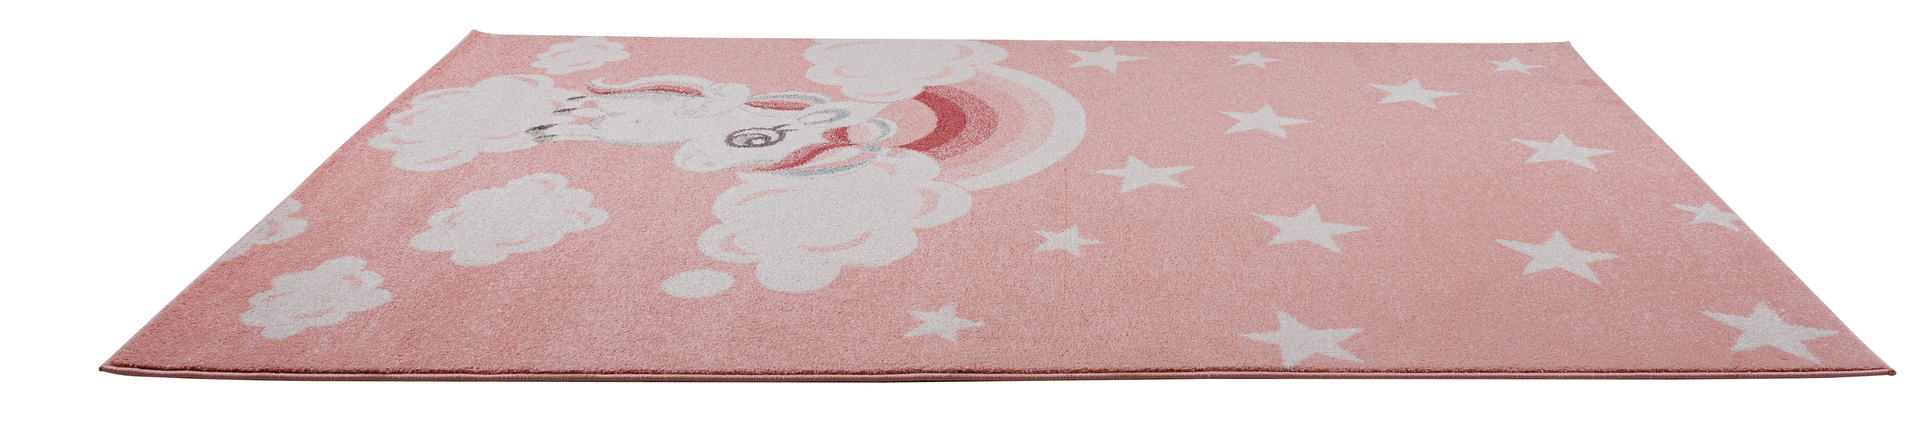 Baby Pink Soft Cute Area rug Carpet Mat